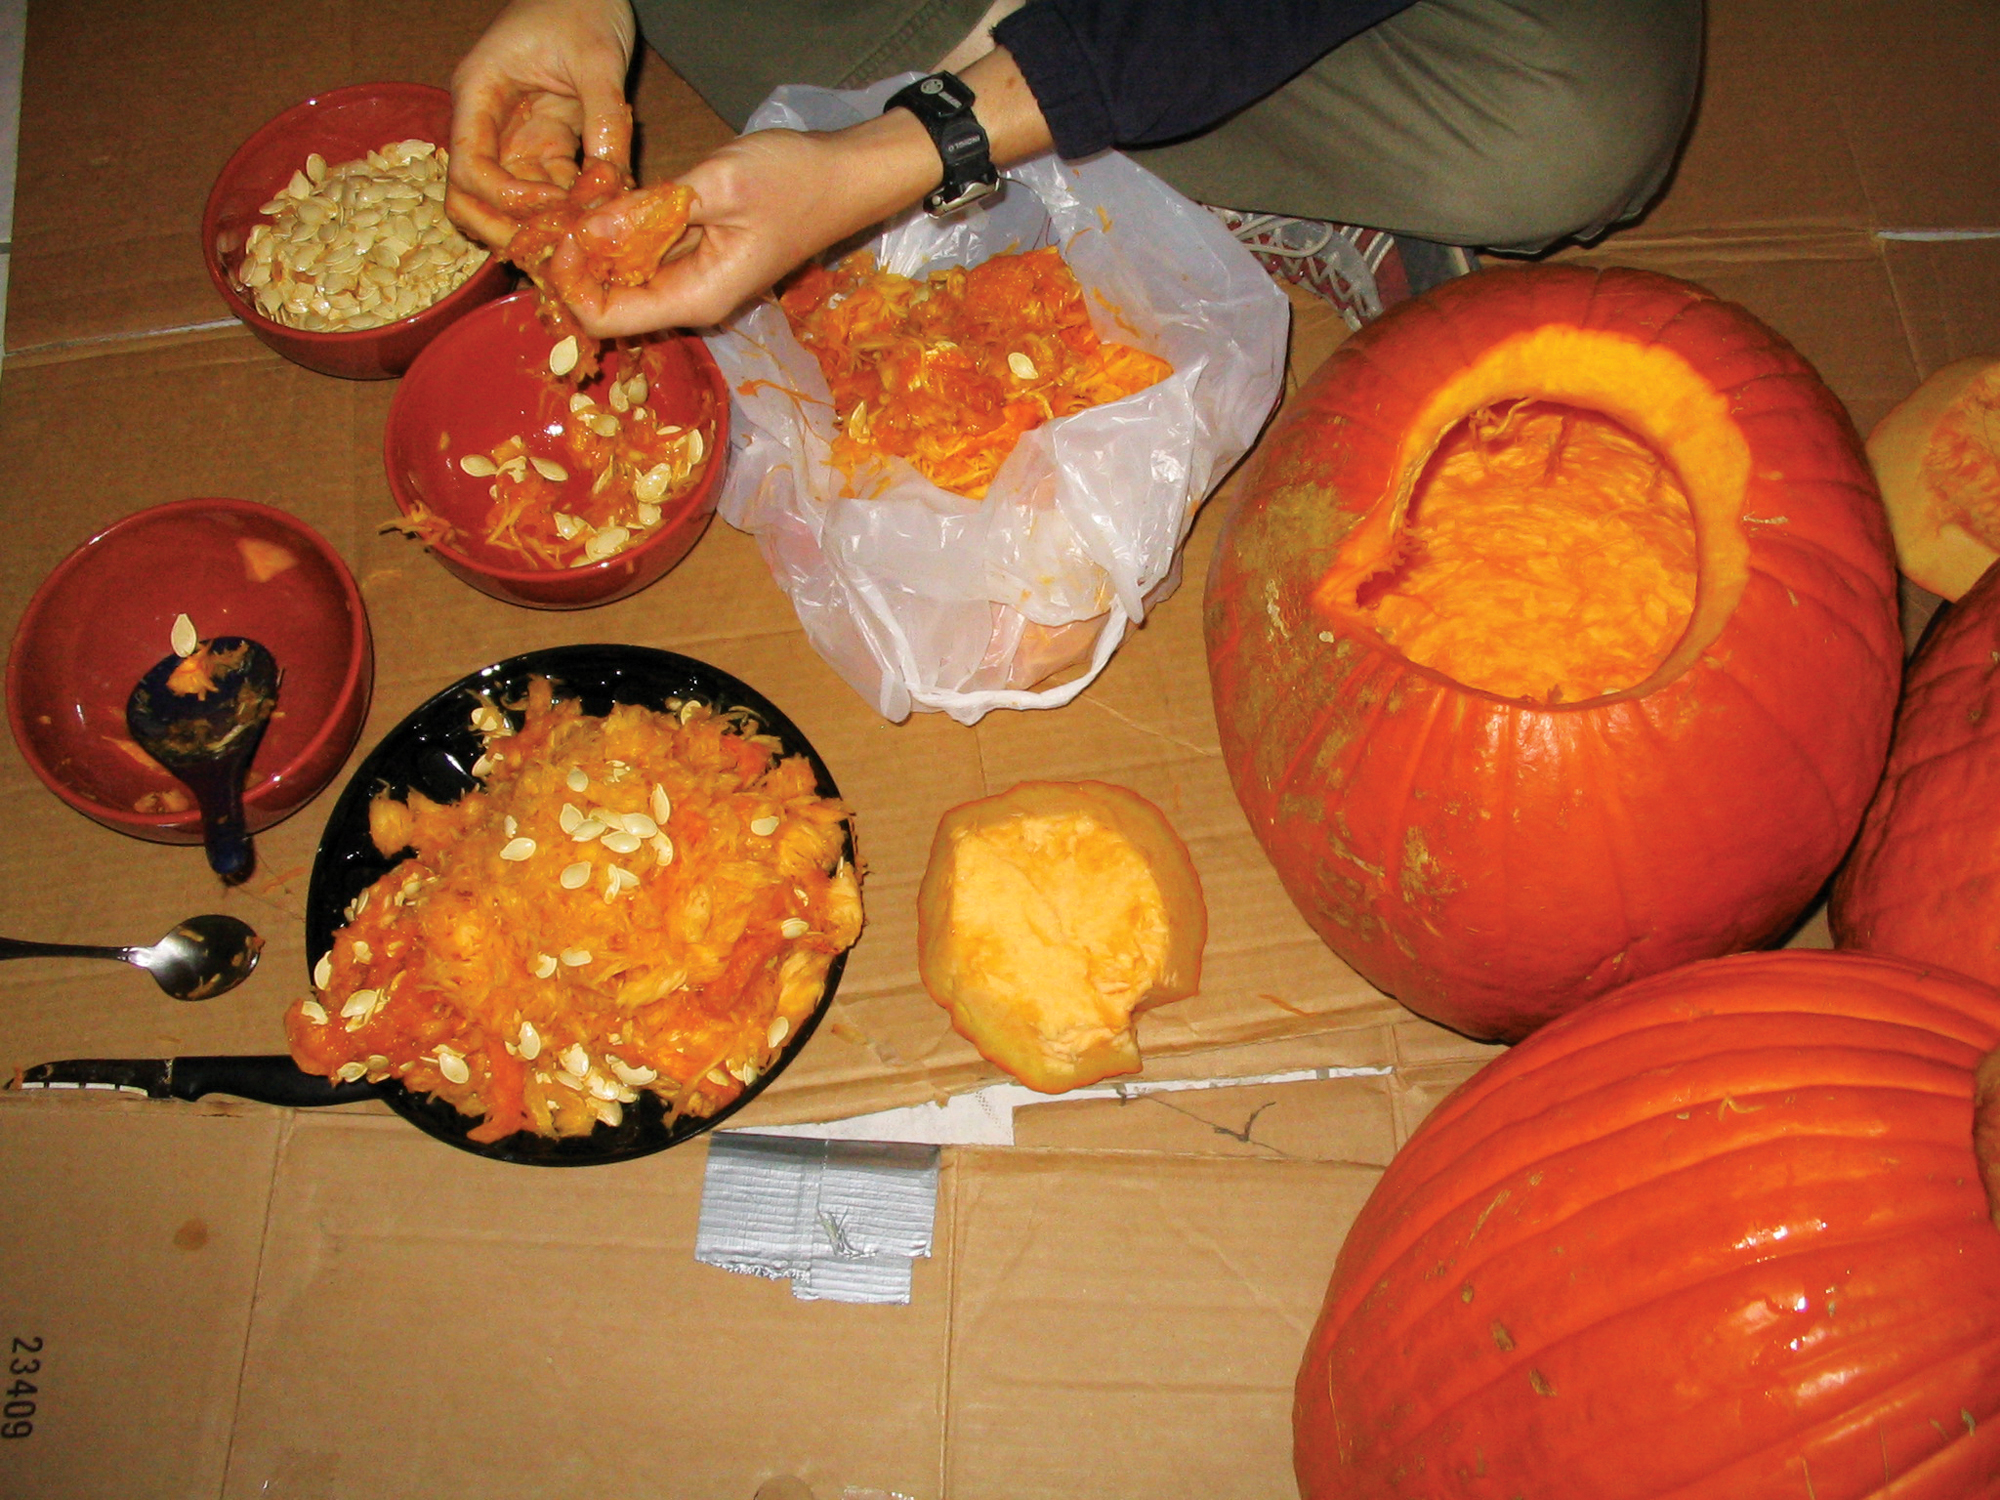 New Project: Roasted Pumpkin Guts